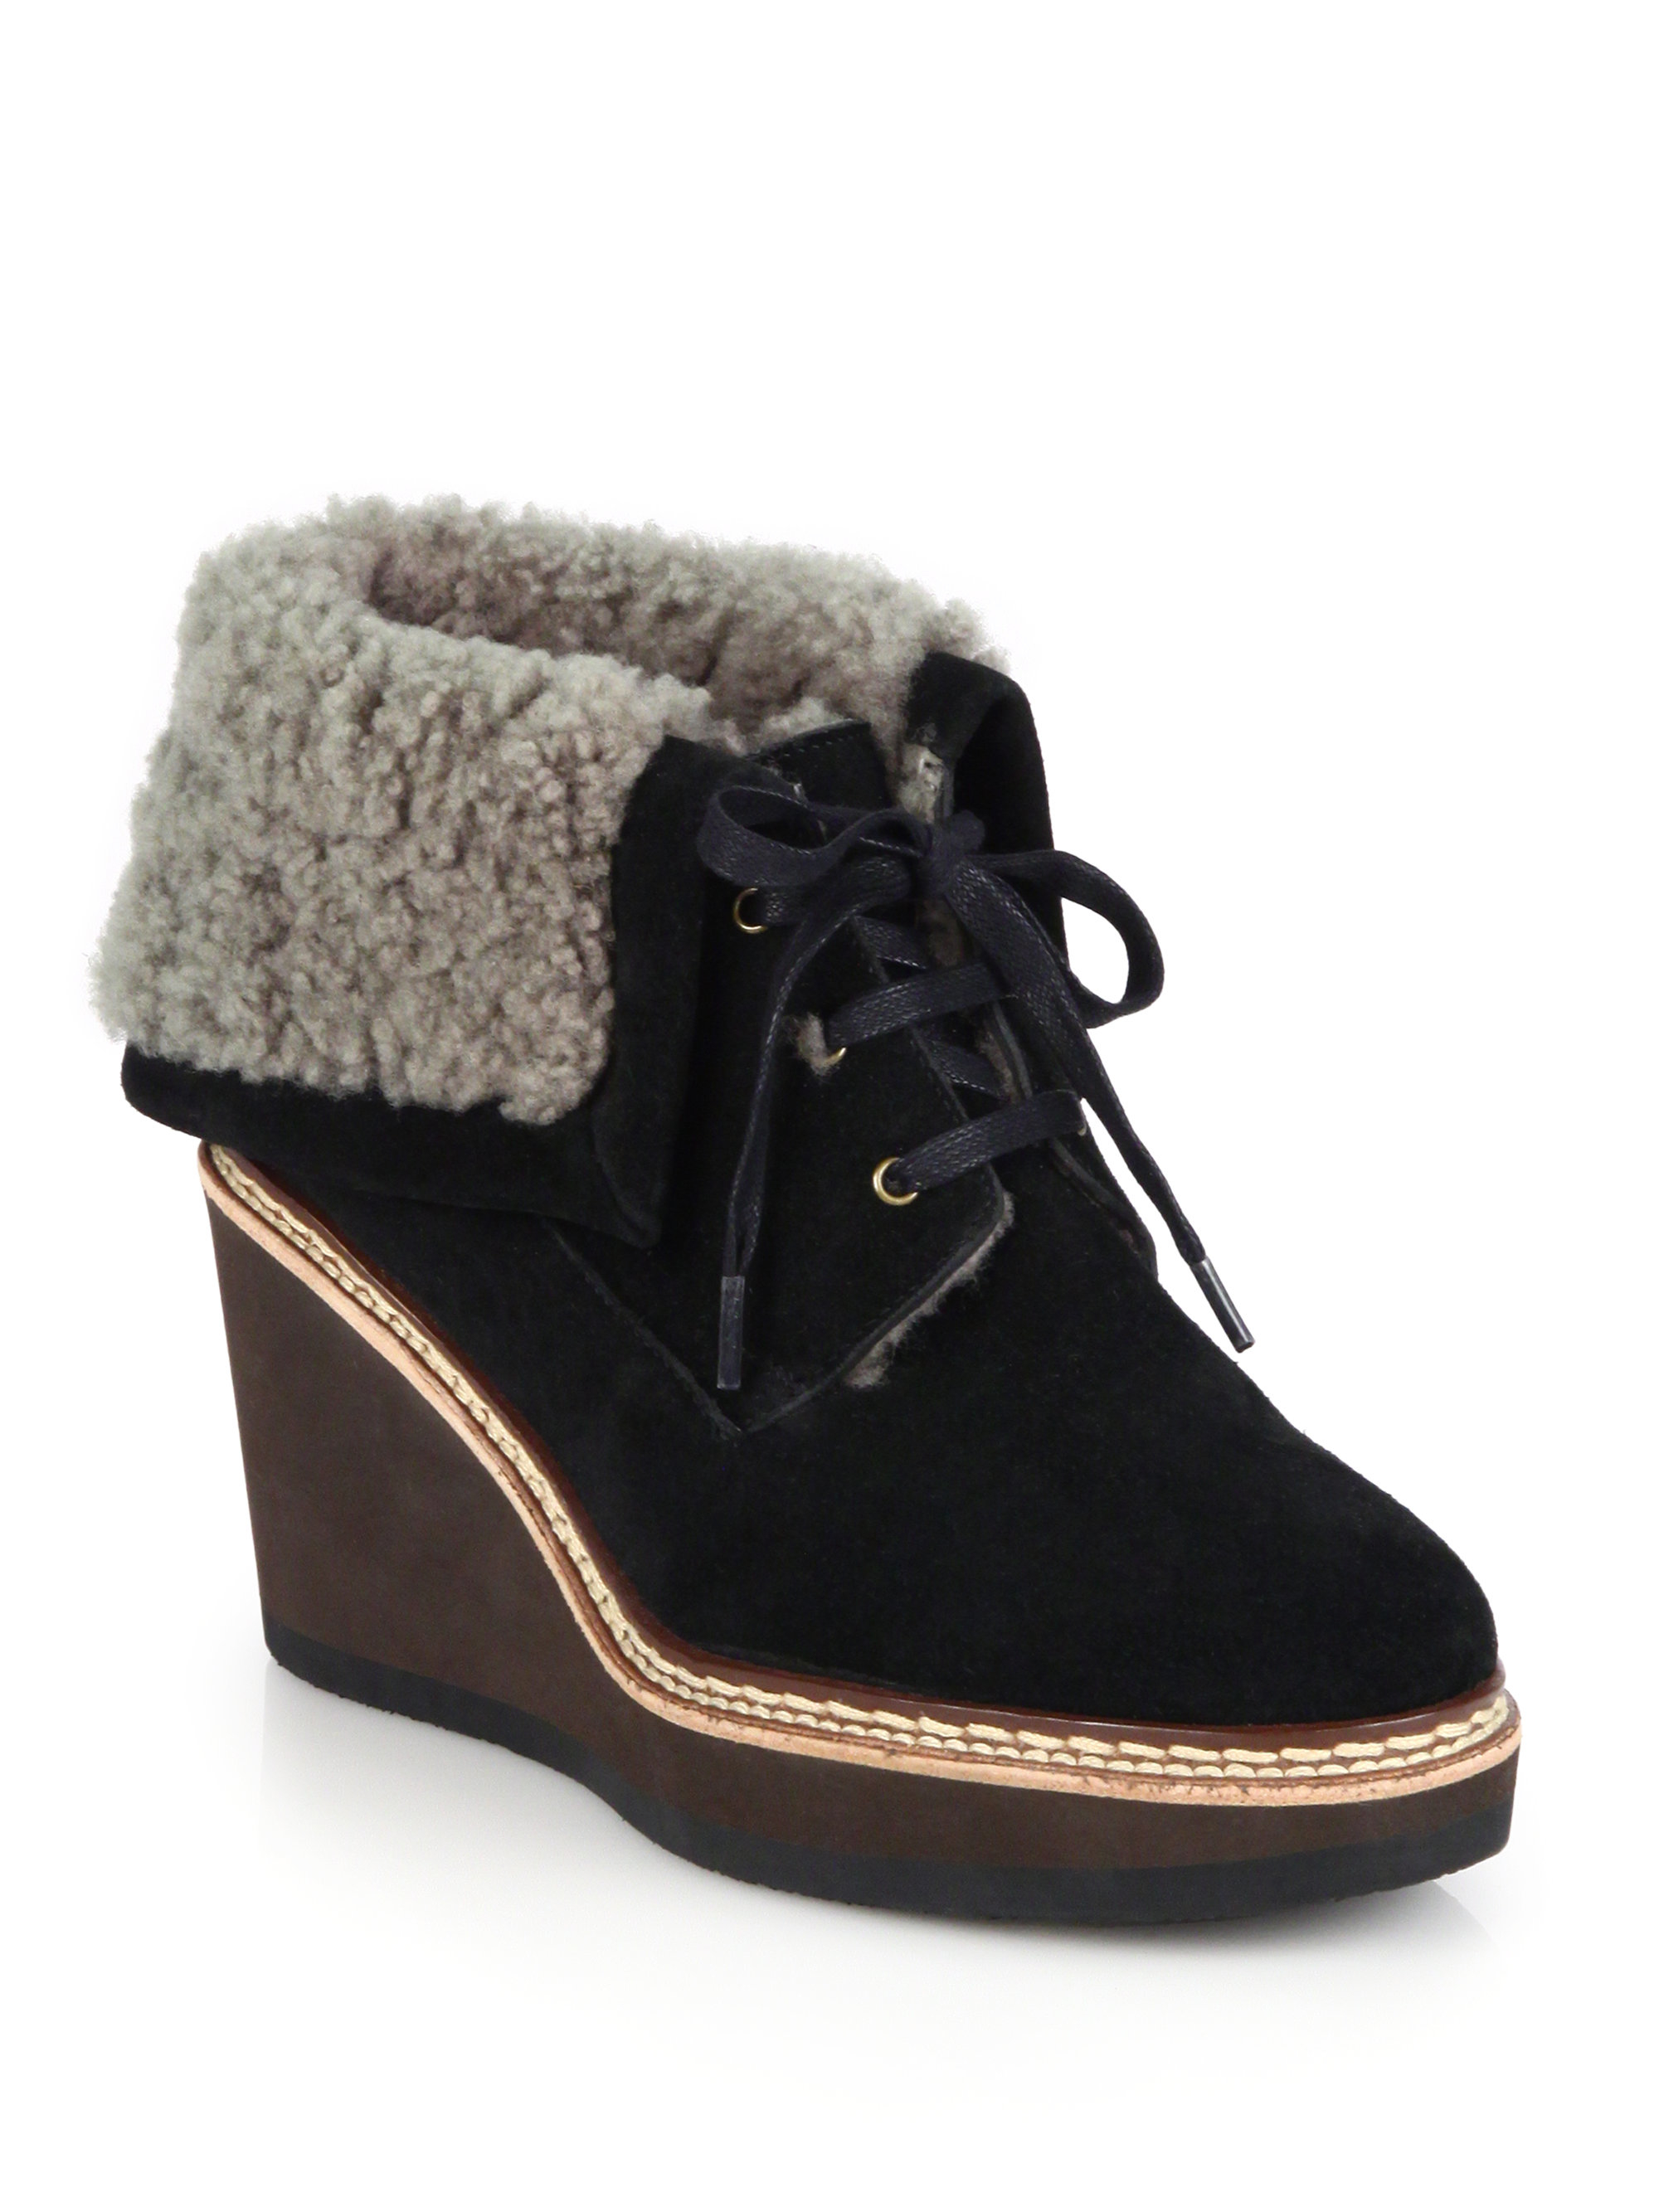 e4cb469a483 See By Chloé Black Suede & Shearling Lace-up Wedge Booties